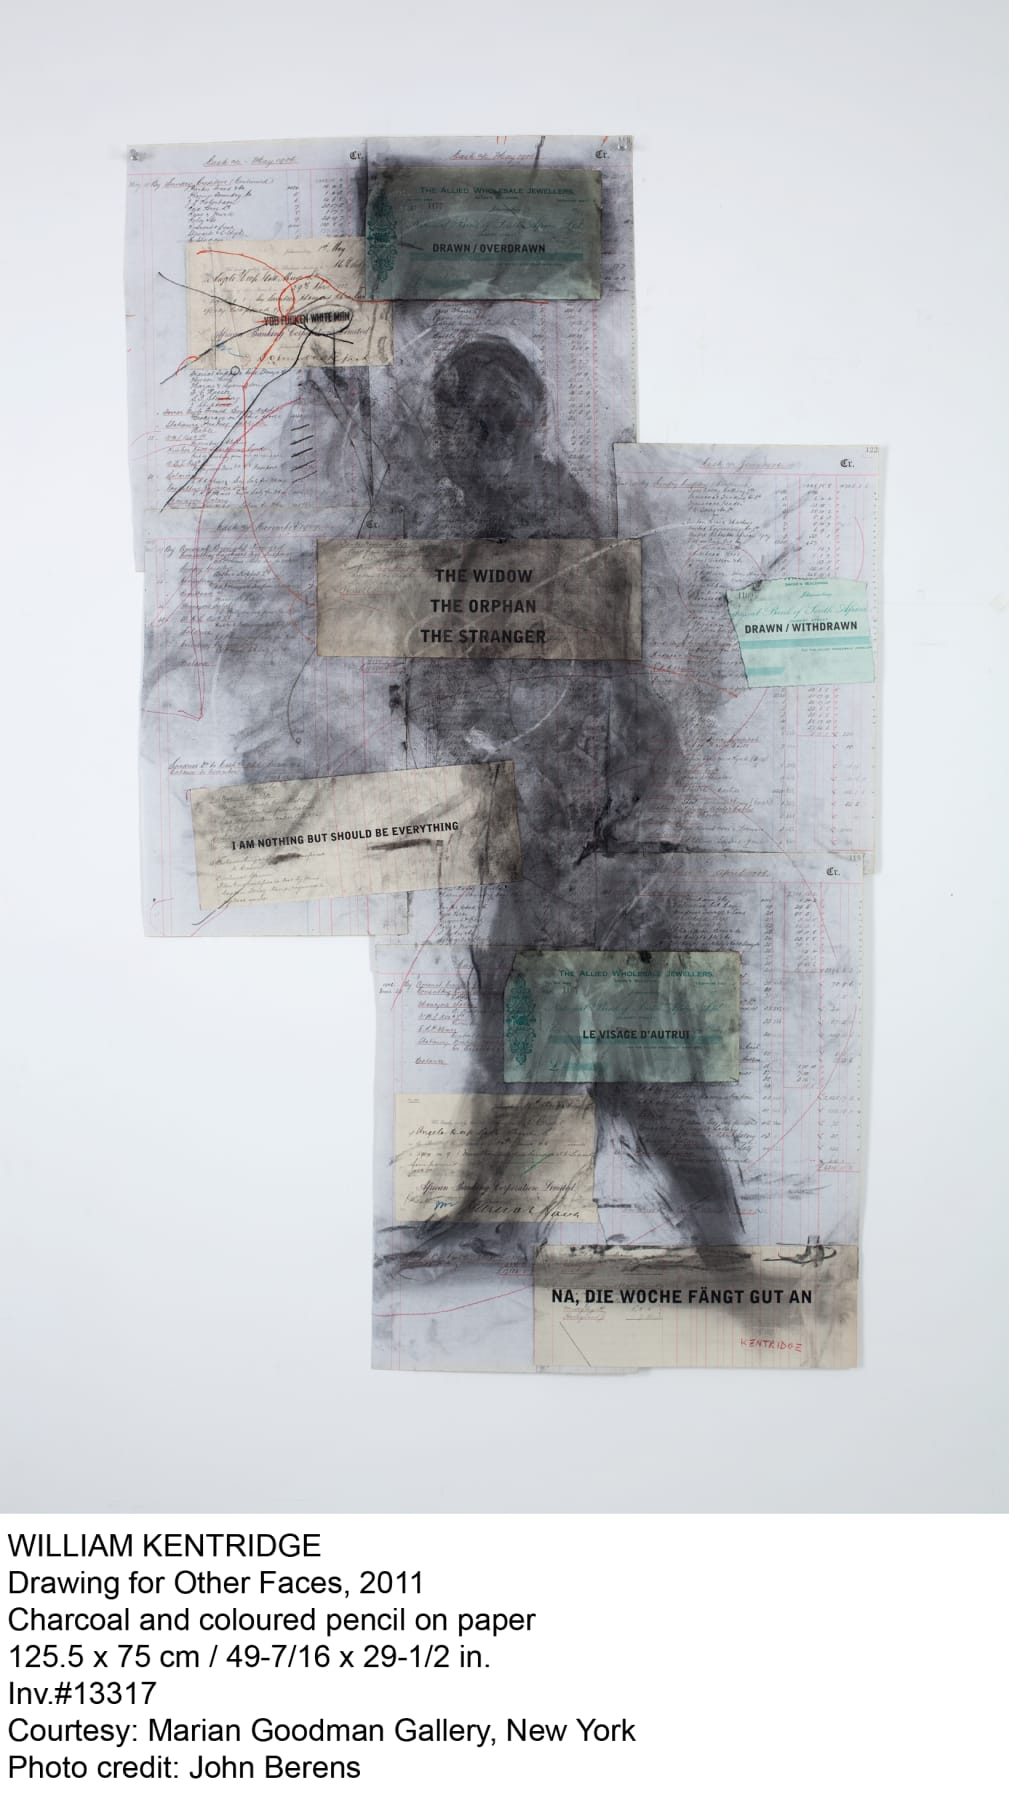 William Kentridge, Drawing for 'Other Faces', 2011